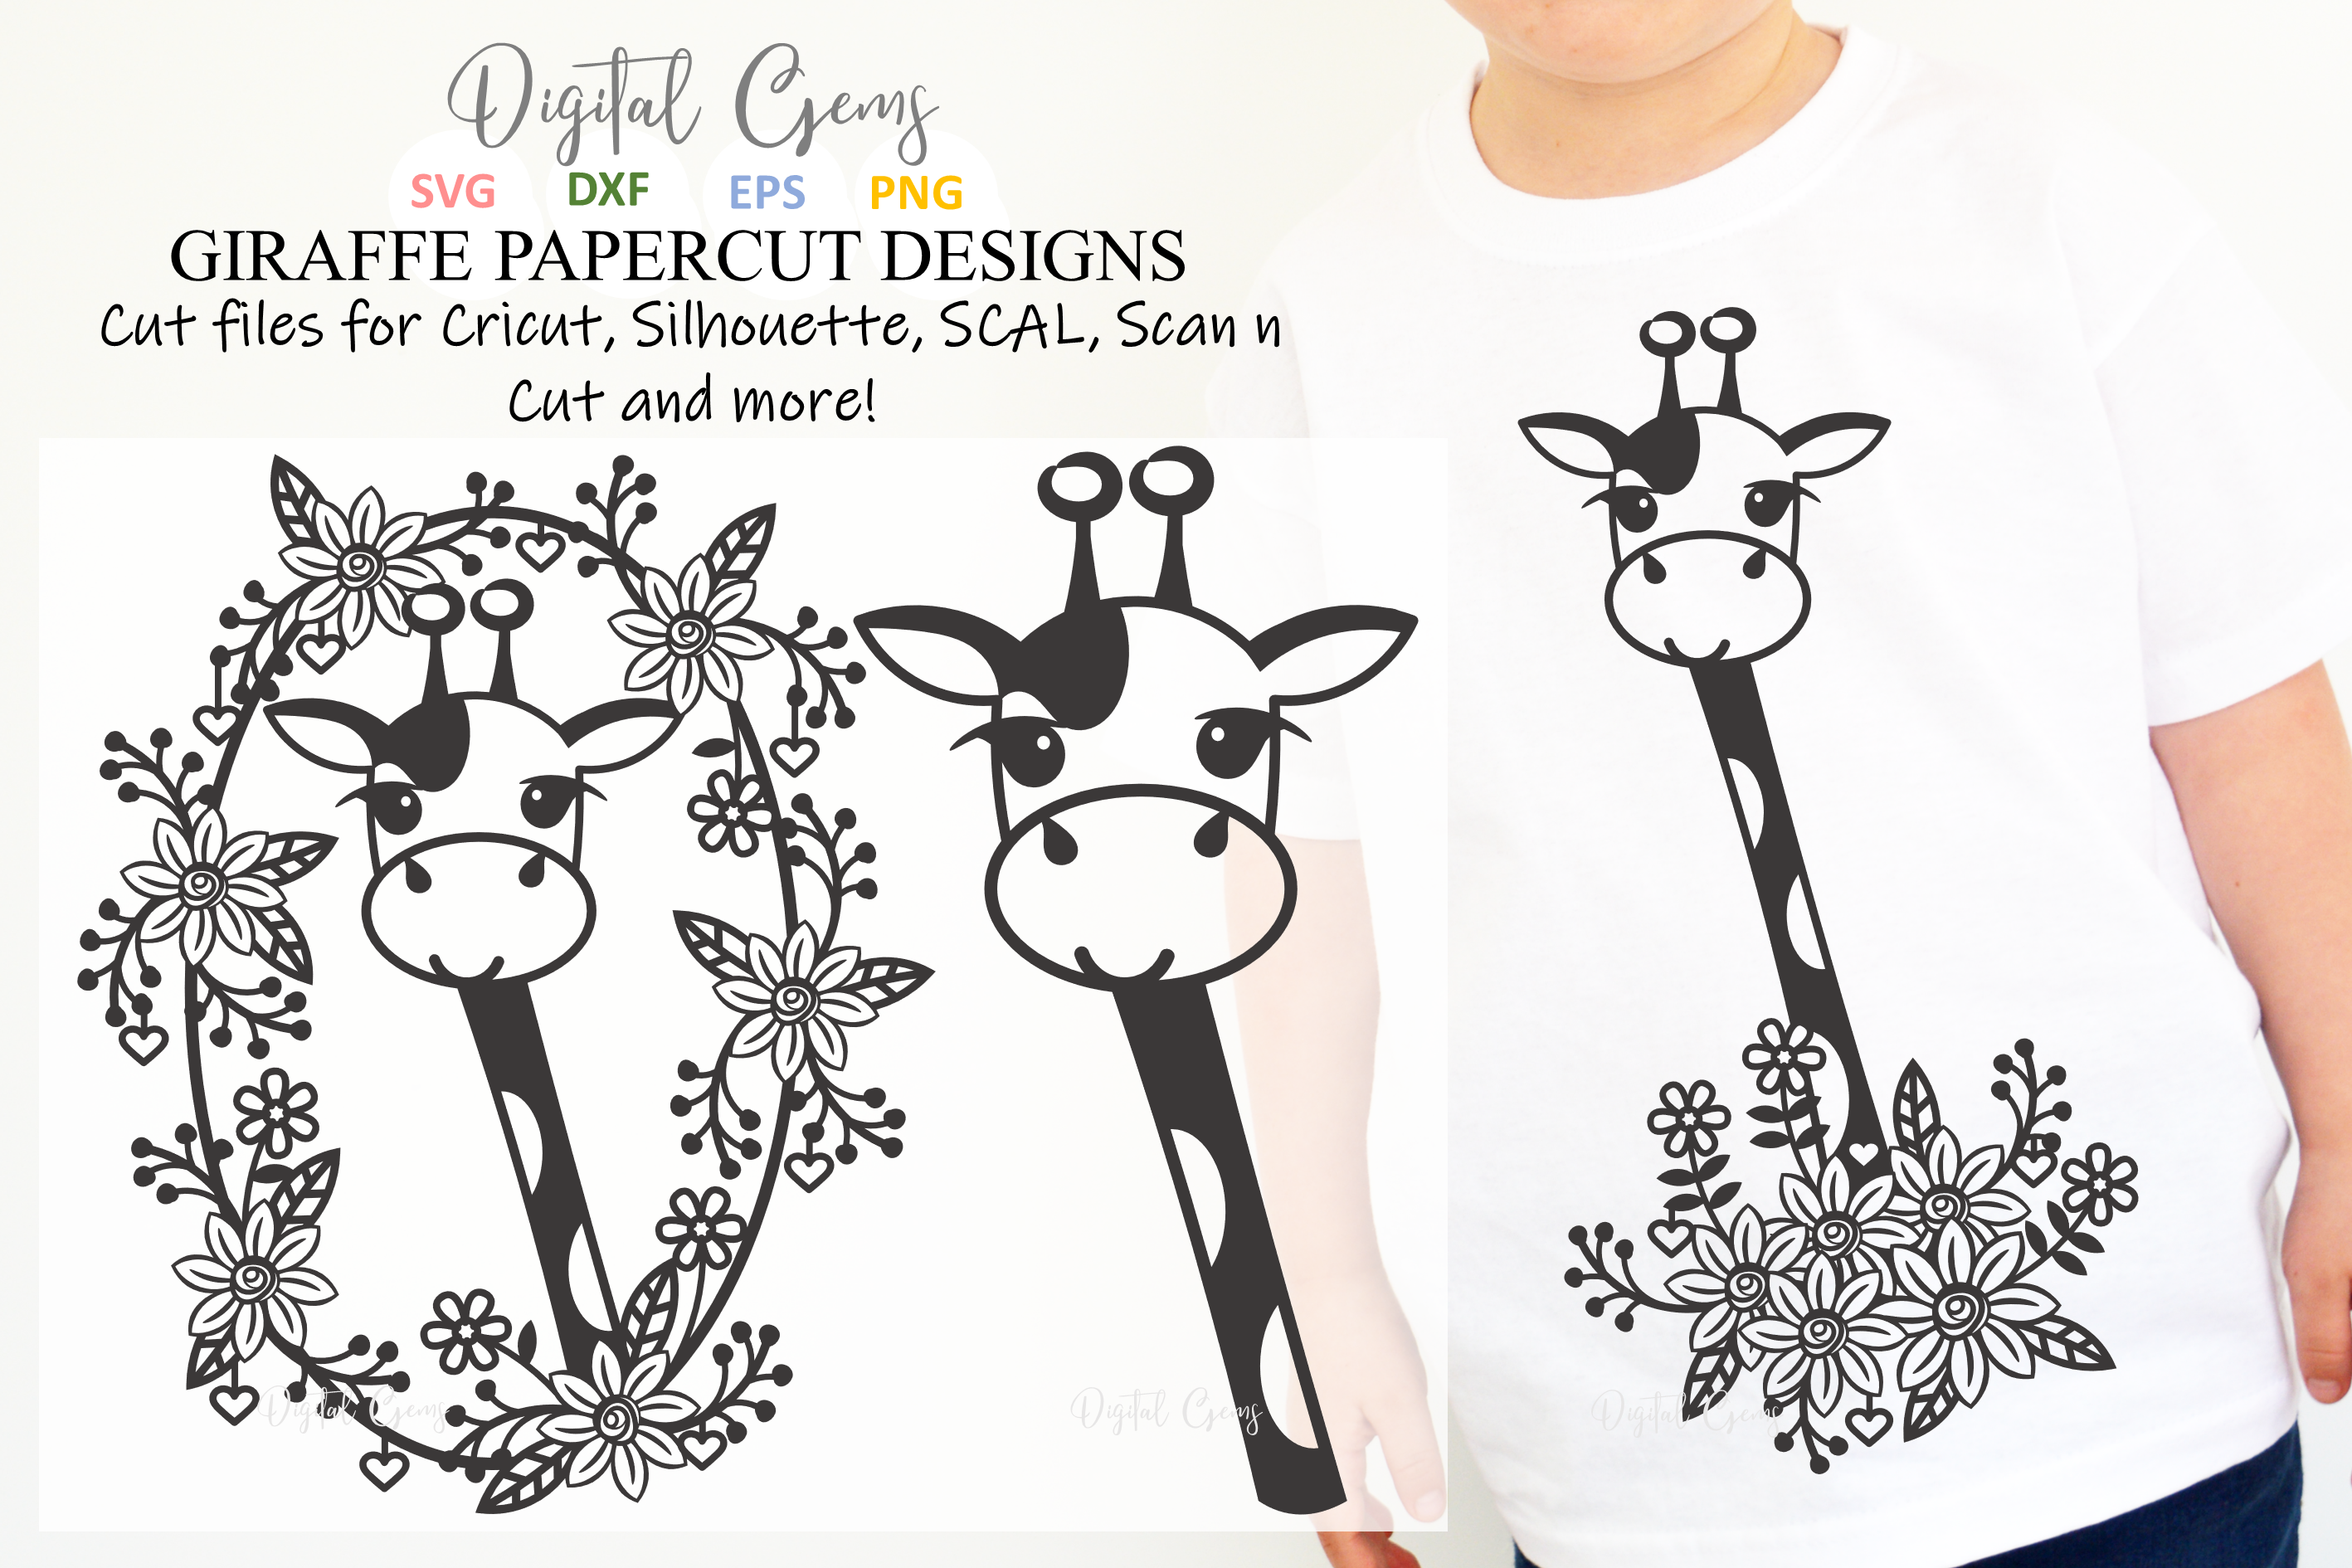 Giraffe paper cut designs SVG / DXF / EPS / PNG files example image 1